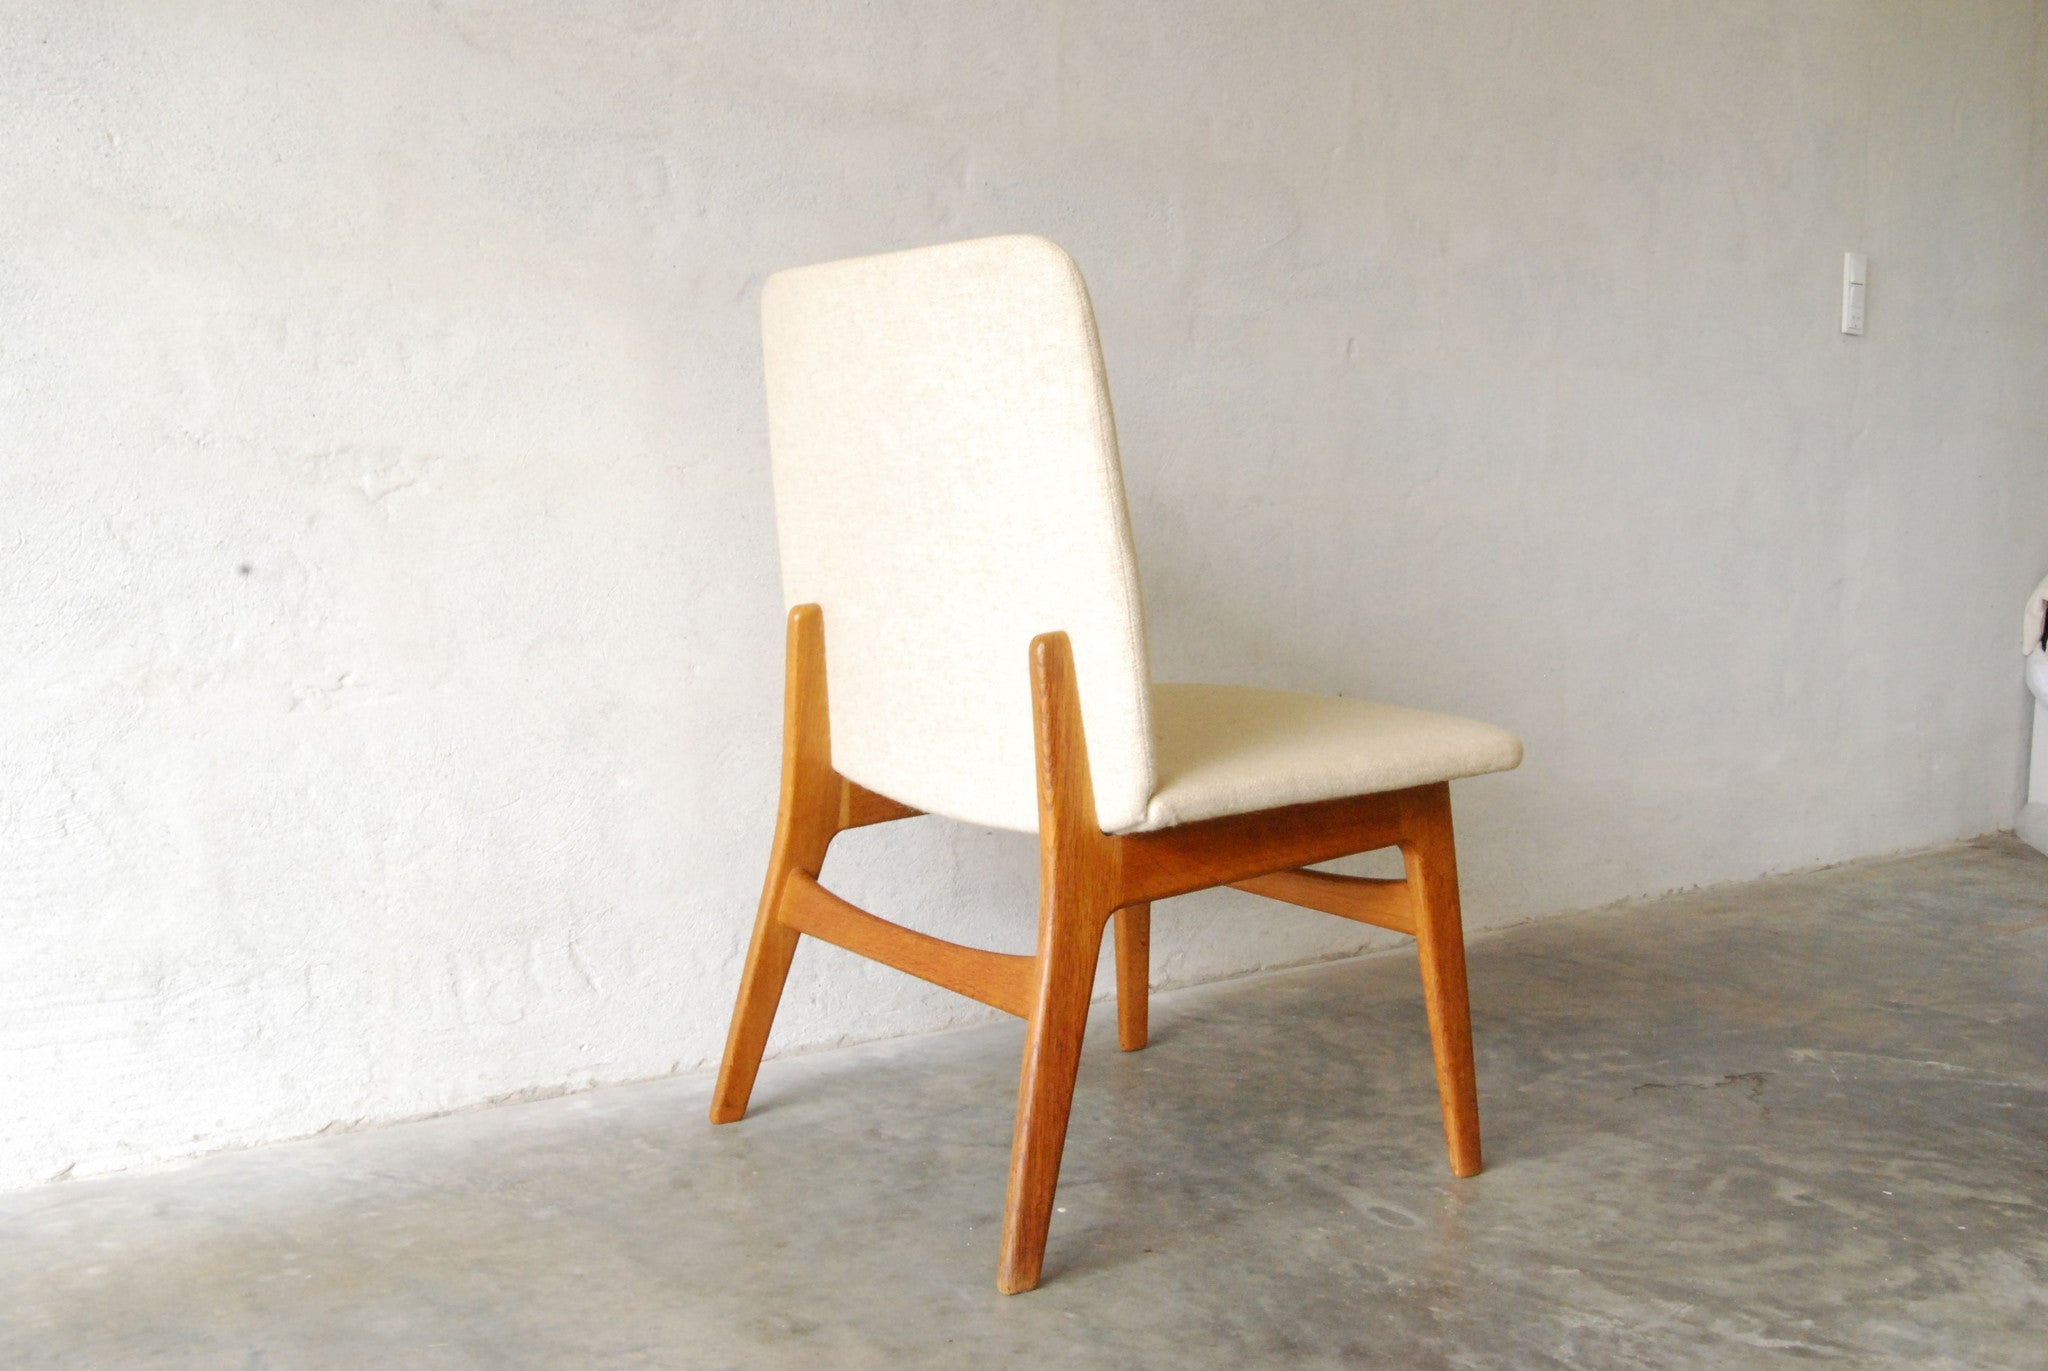 Pair of occasional chairs by Børge Mogensen